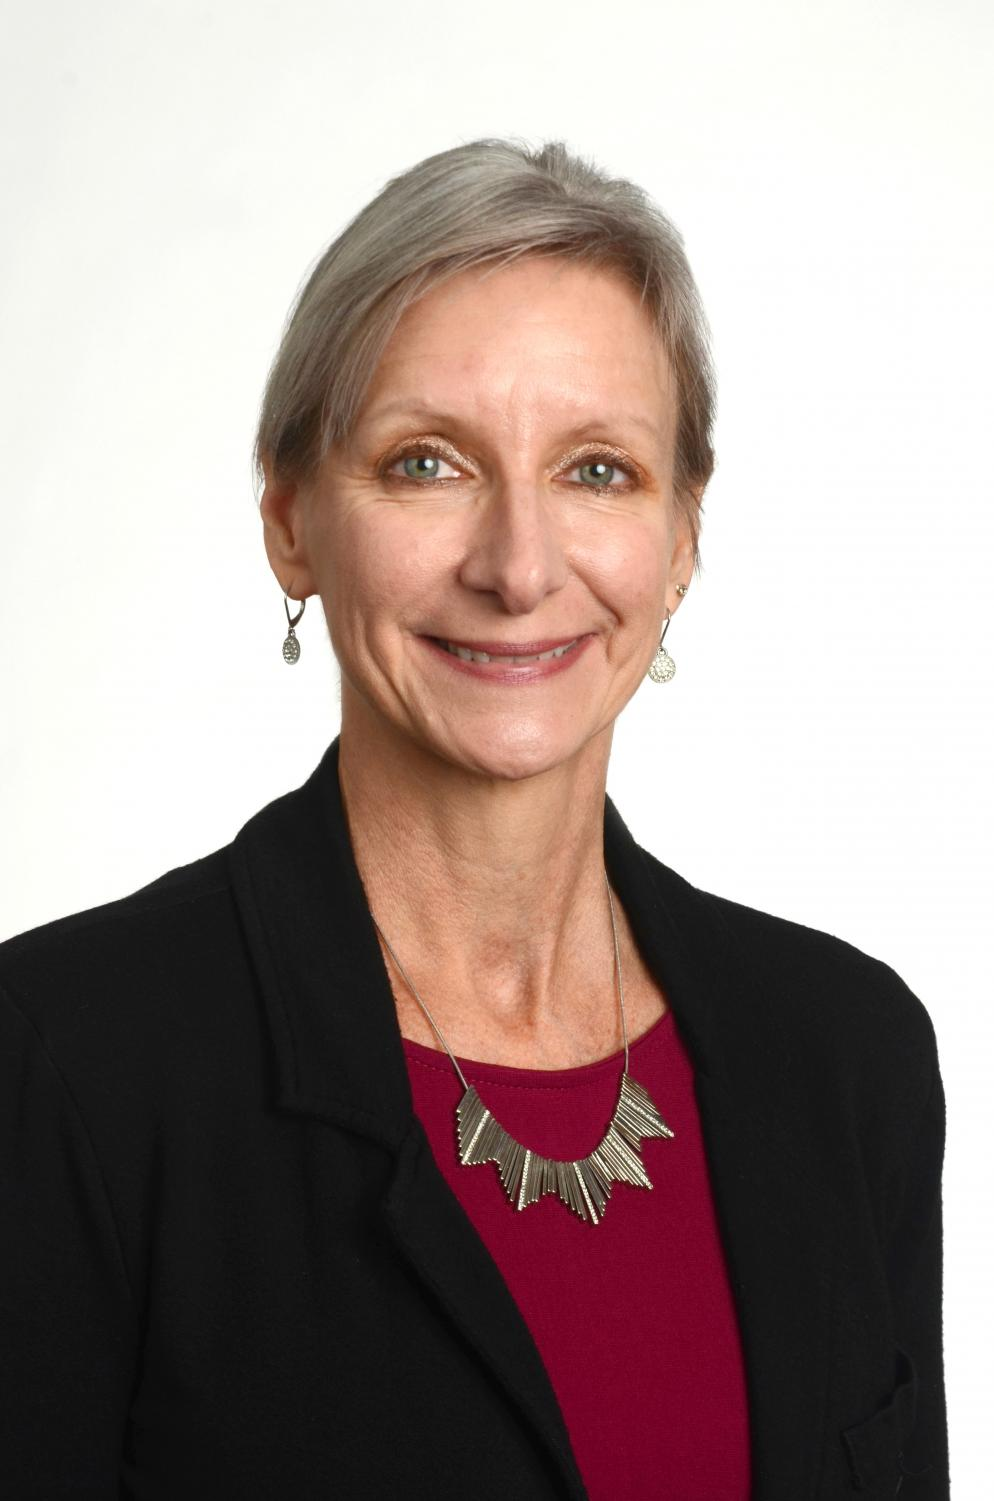 Valerie Hardcastle, executive director of the Institute for Health Innovation.